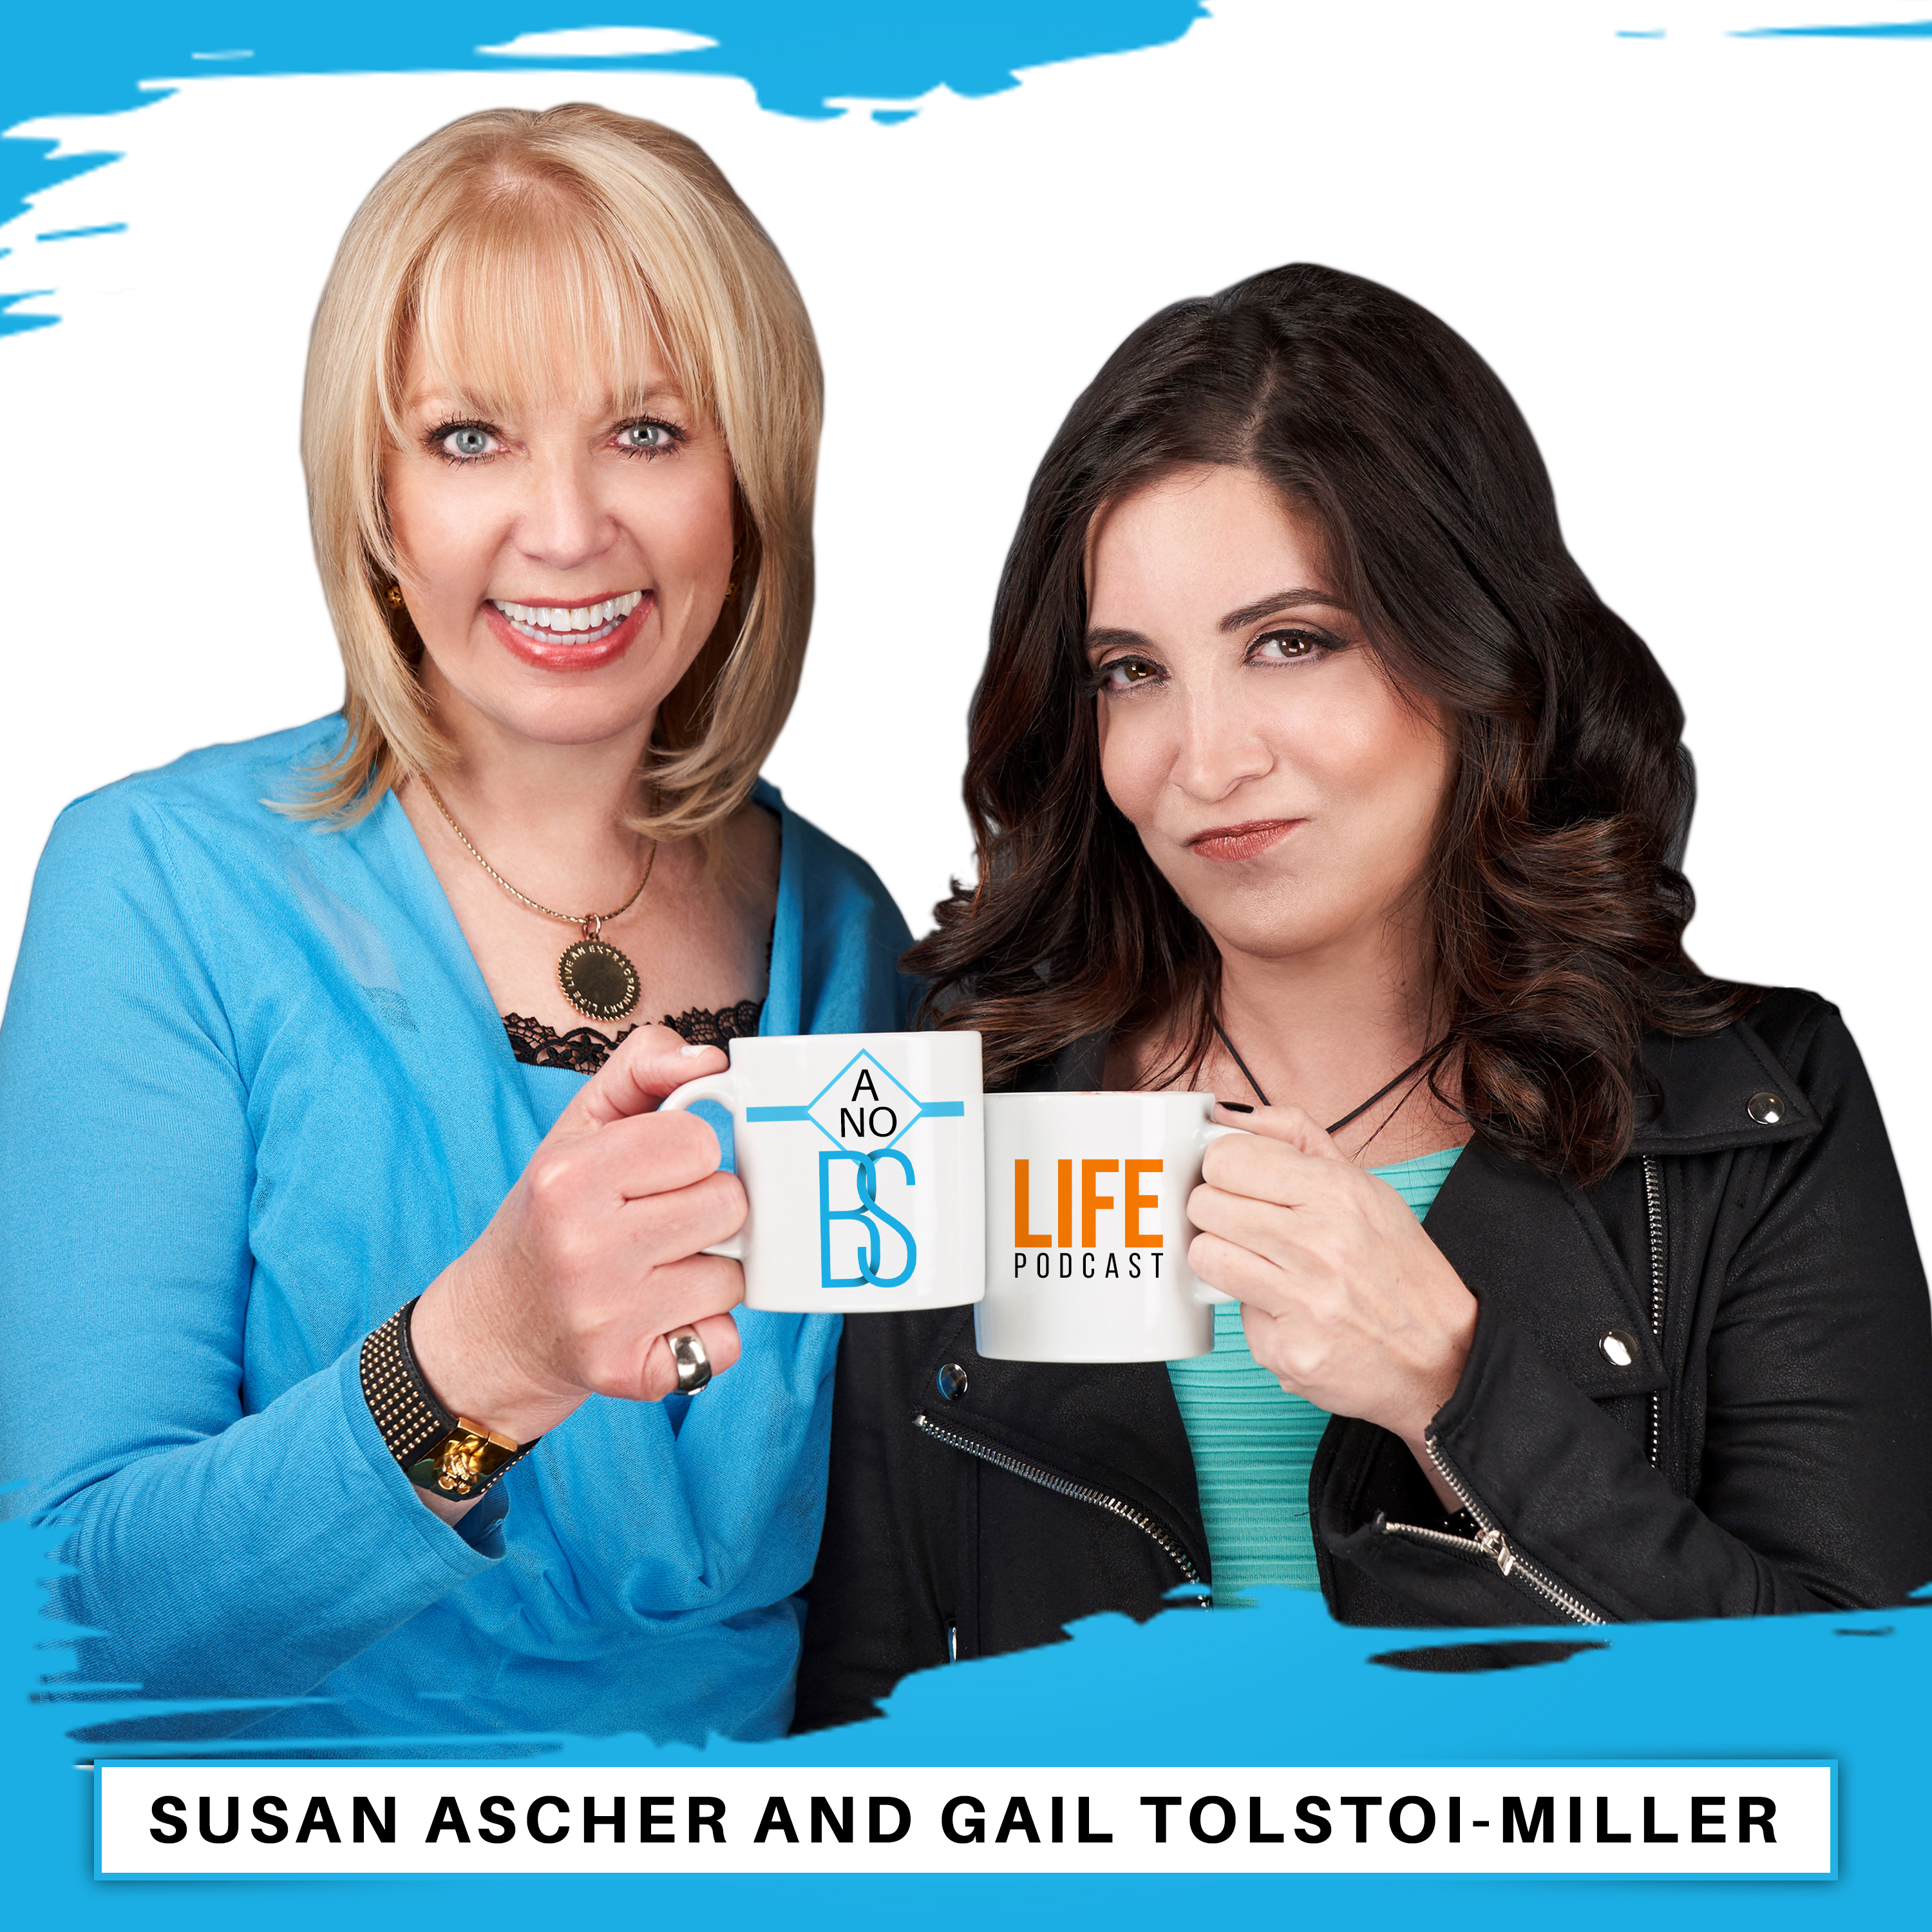 Artwork for A No BS Life Podcast Intro with Gail Tolstoi-Miller & Susan Ascher